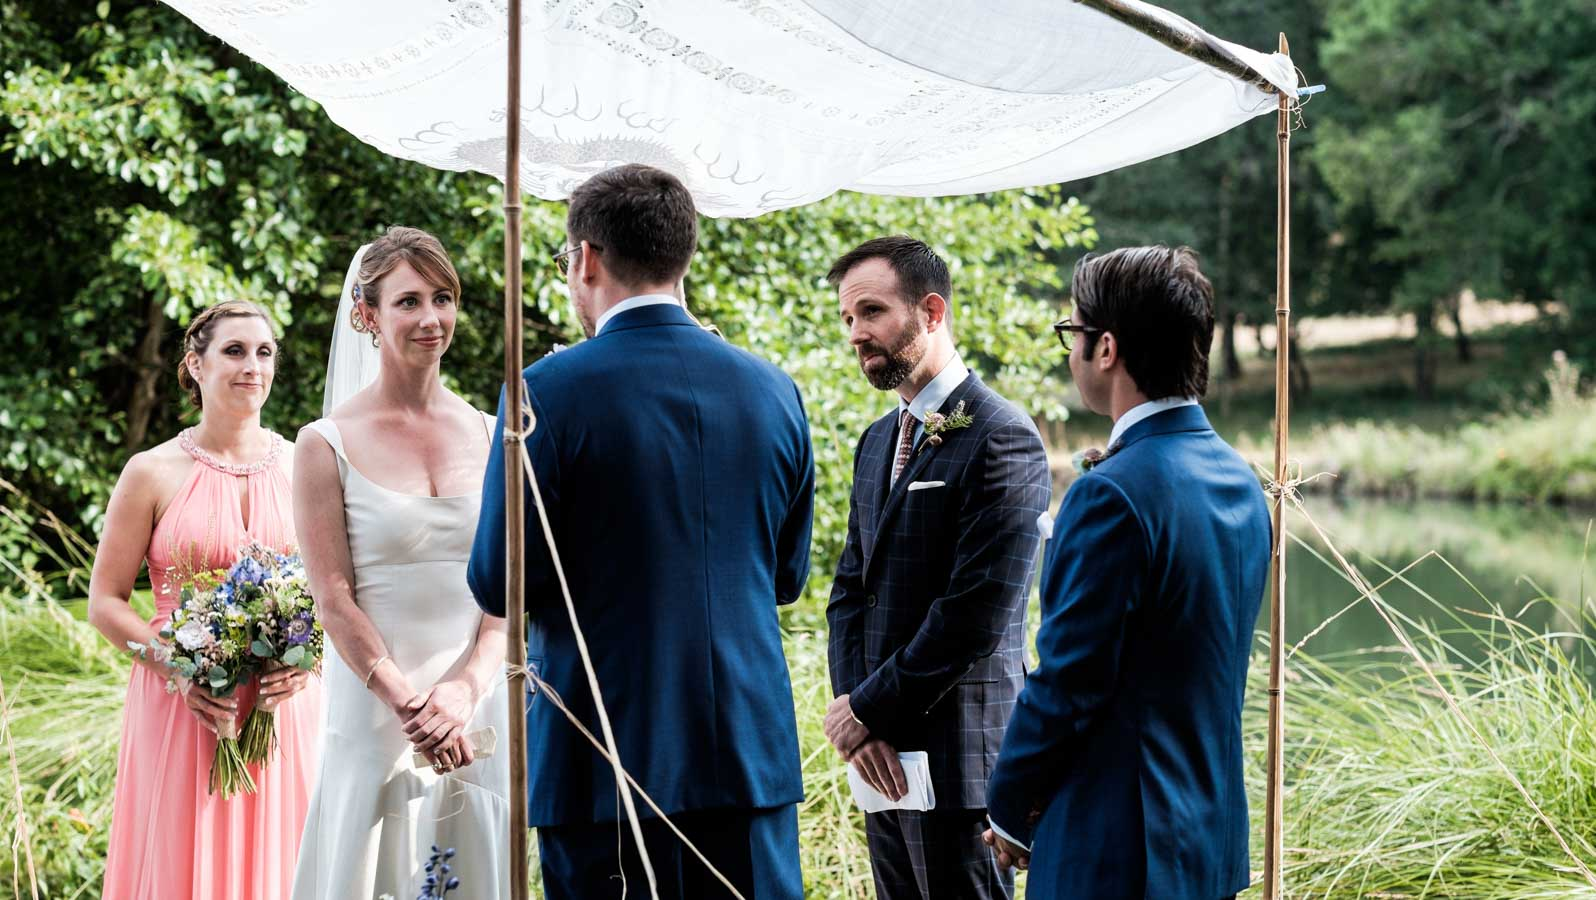 Lot-et-Garonne-Wedding-Photography-228